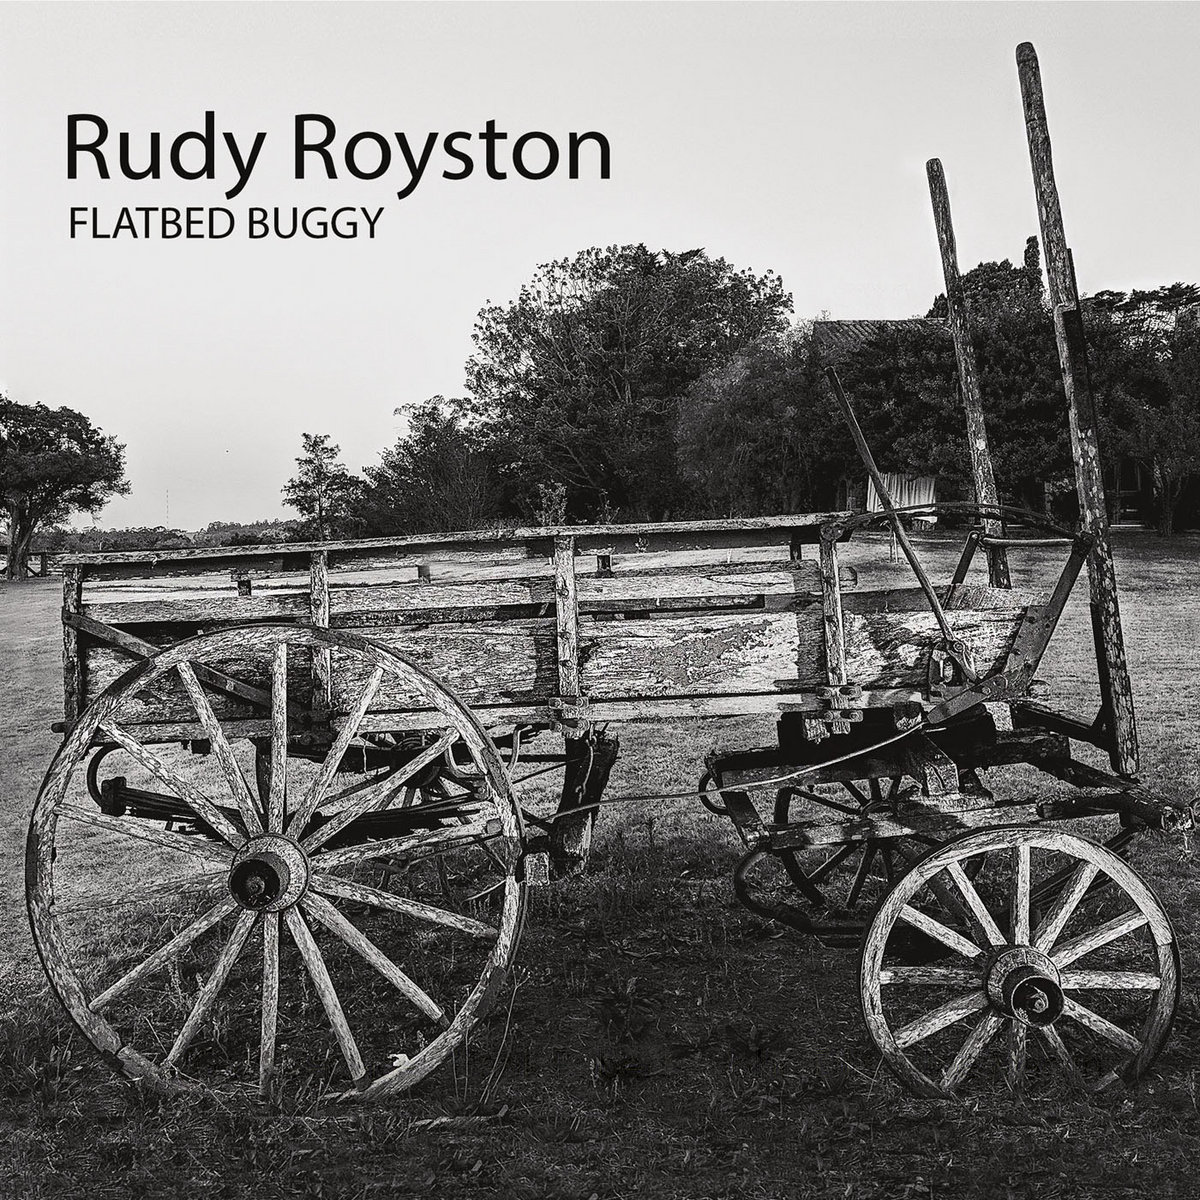 Black Buggy Days 2018 Flatbed Buggy Rudy Royston